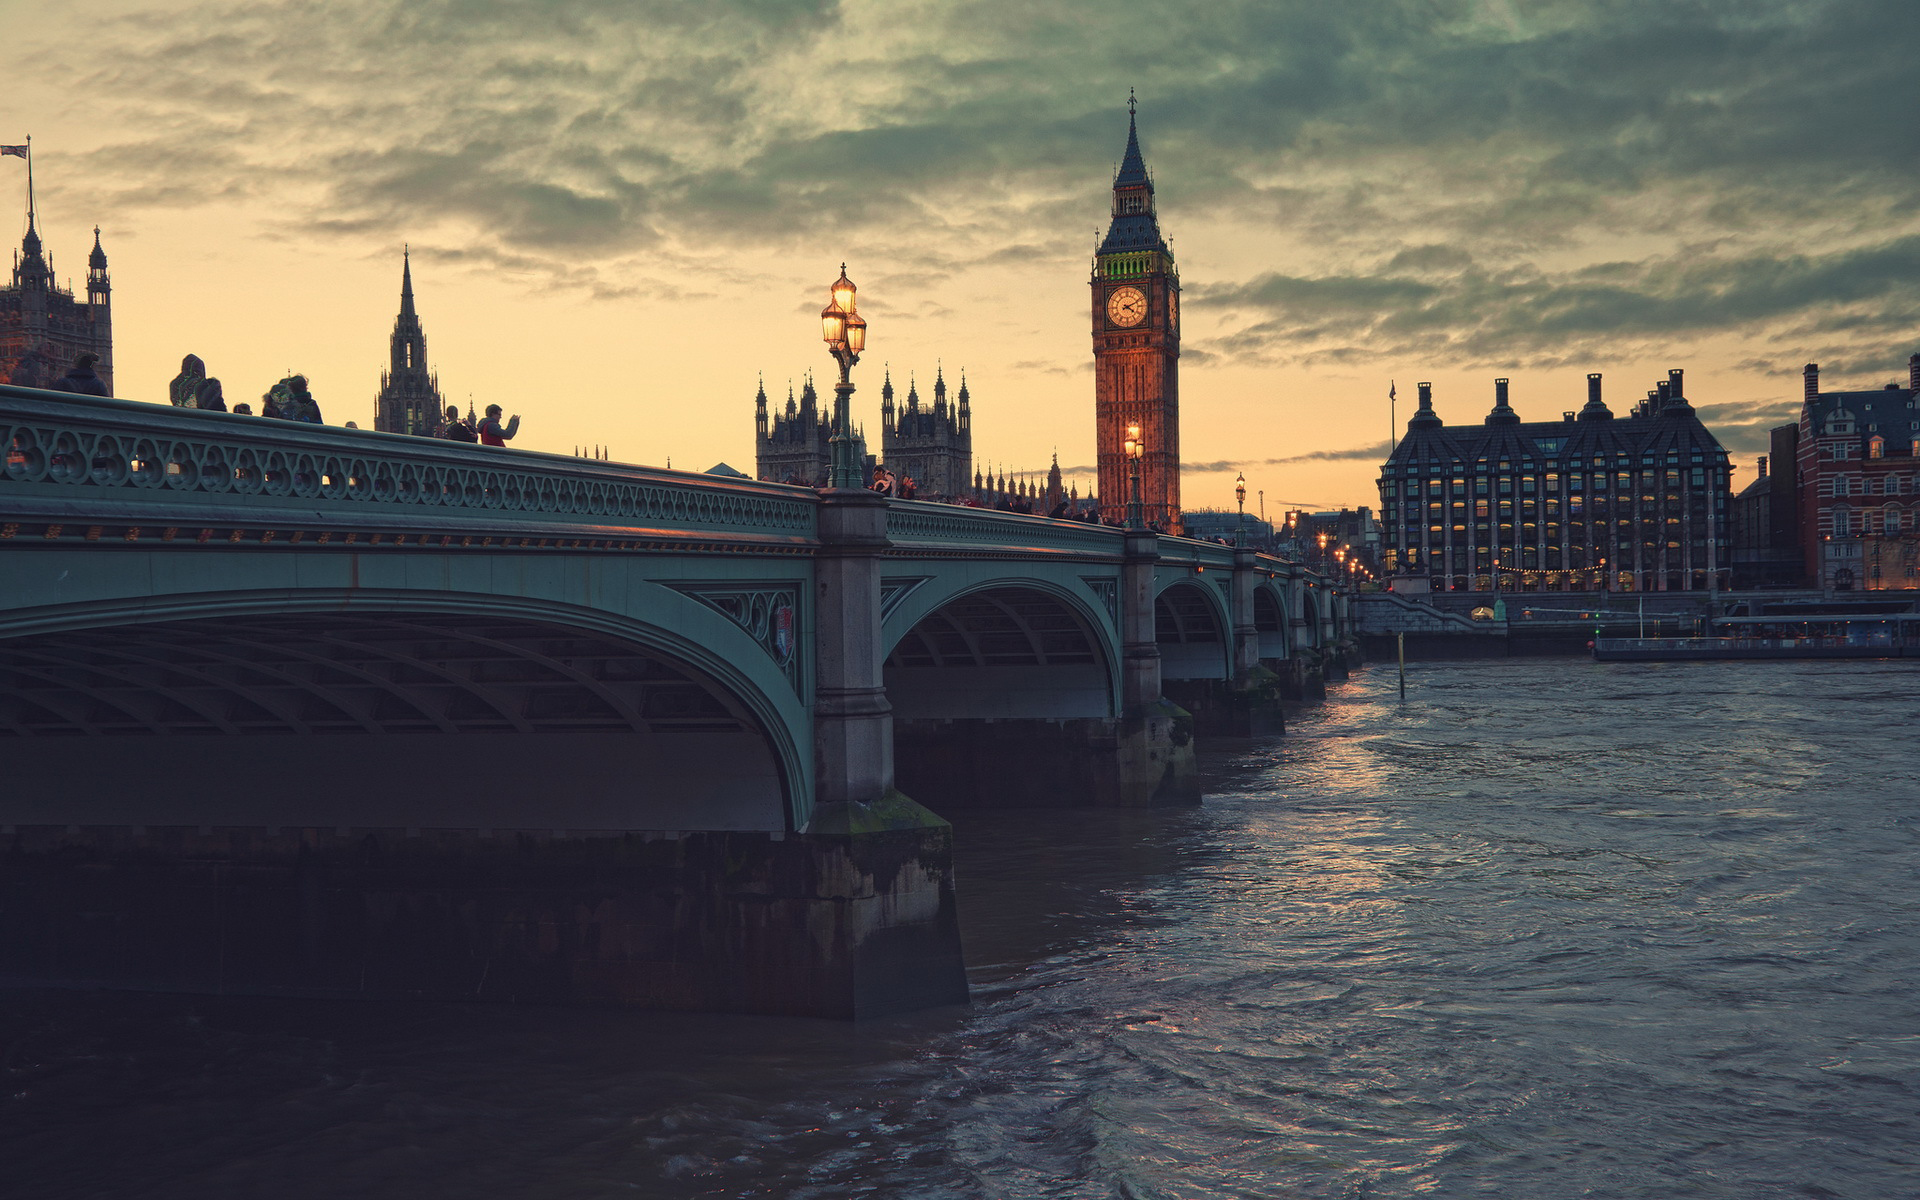 london england | wallpapers55.com - Best Wallpapers for PCs, Laptops ...